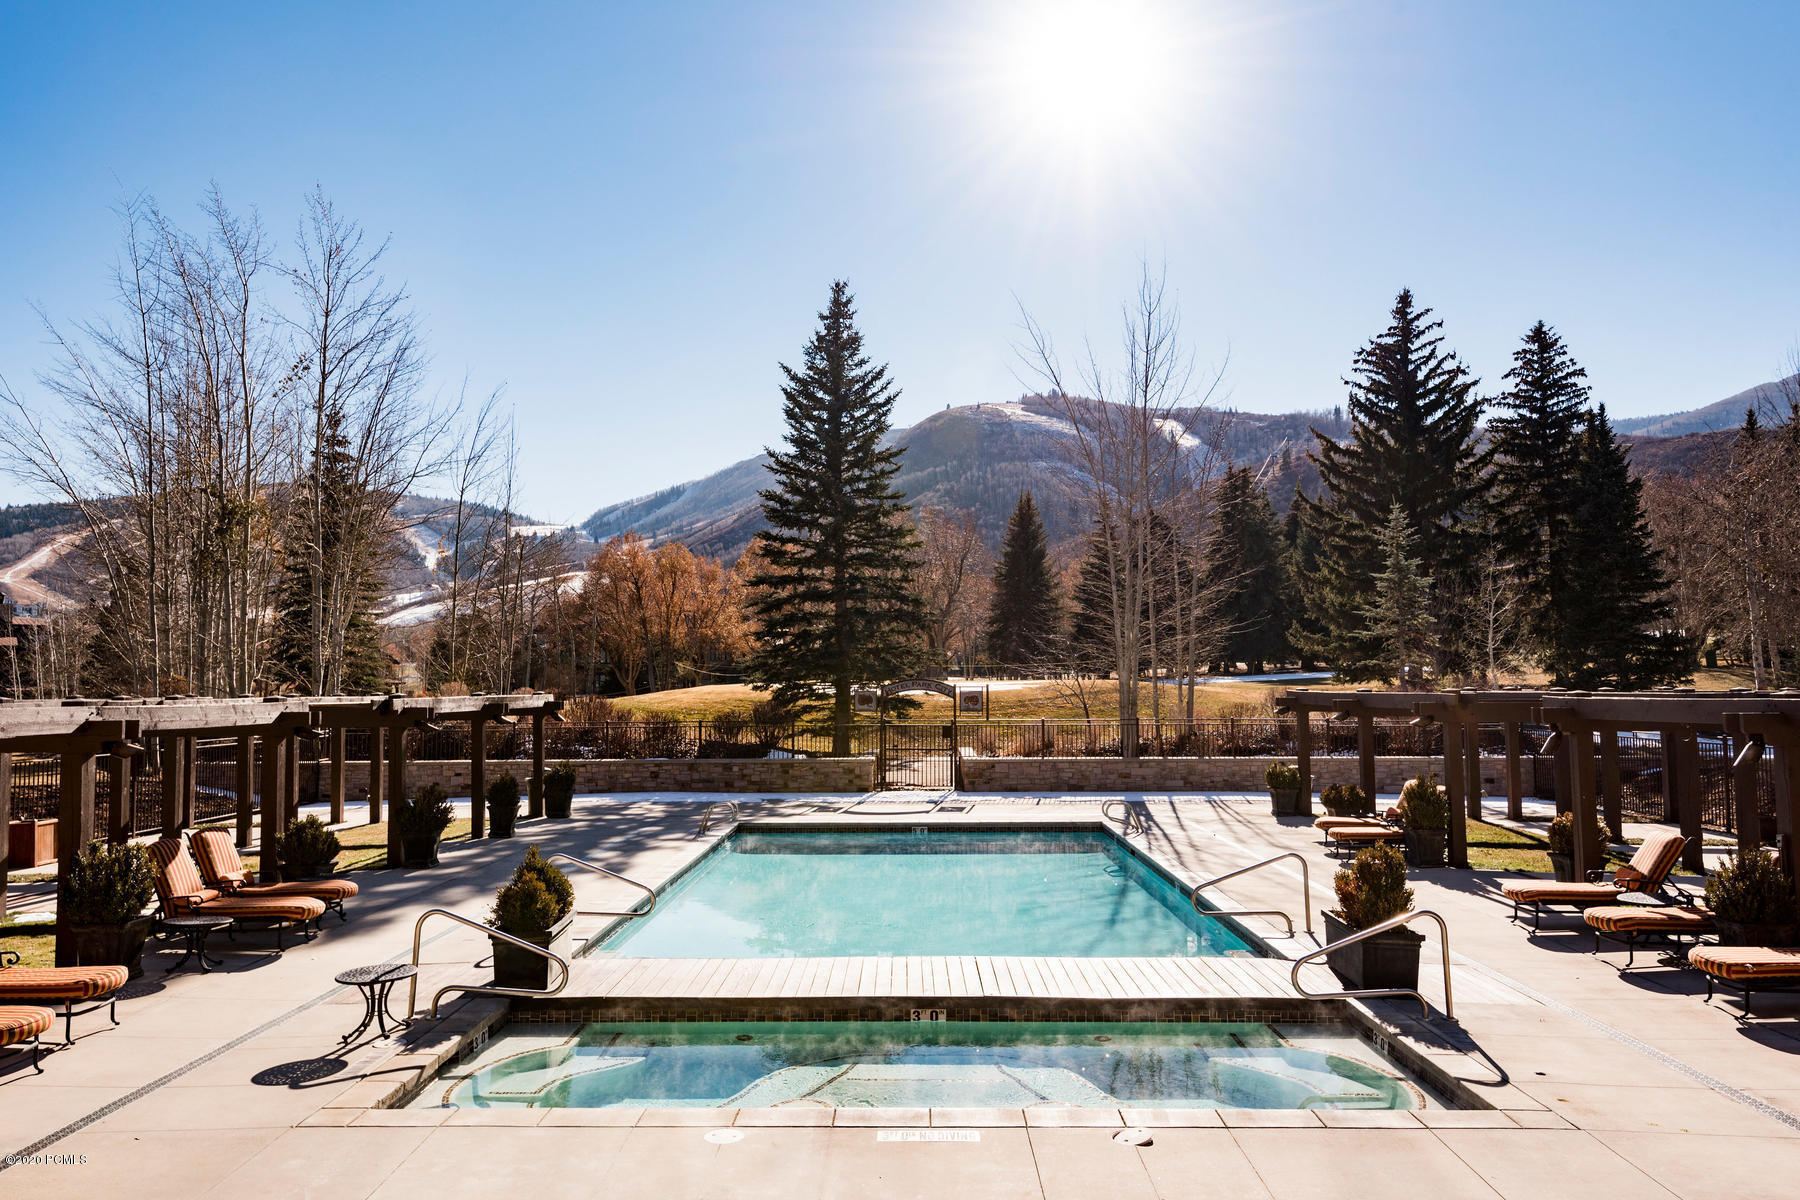 2001 Park Avenue, Park City, Utah 84060, ,1 BathroomBathrooms,Condominium,For Sale,Park,20190109112430415765000000